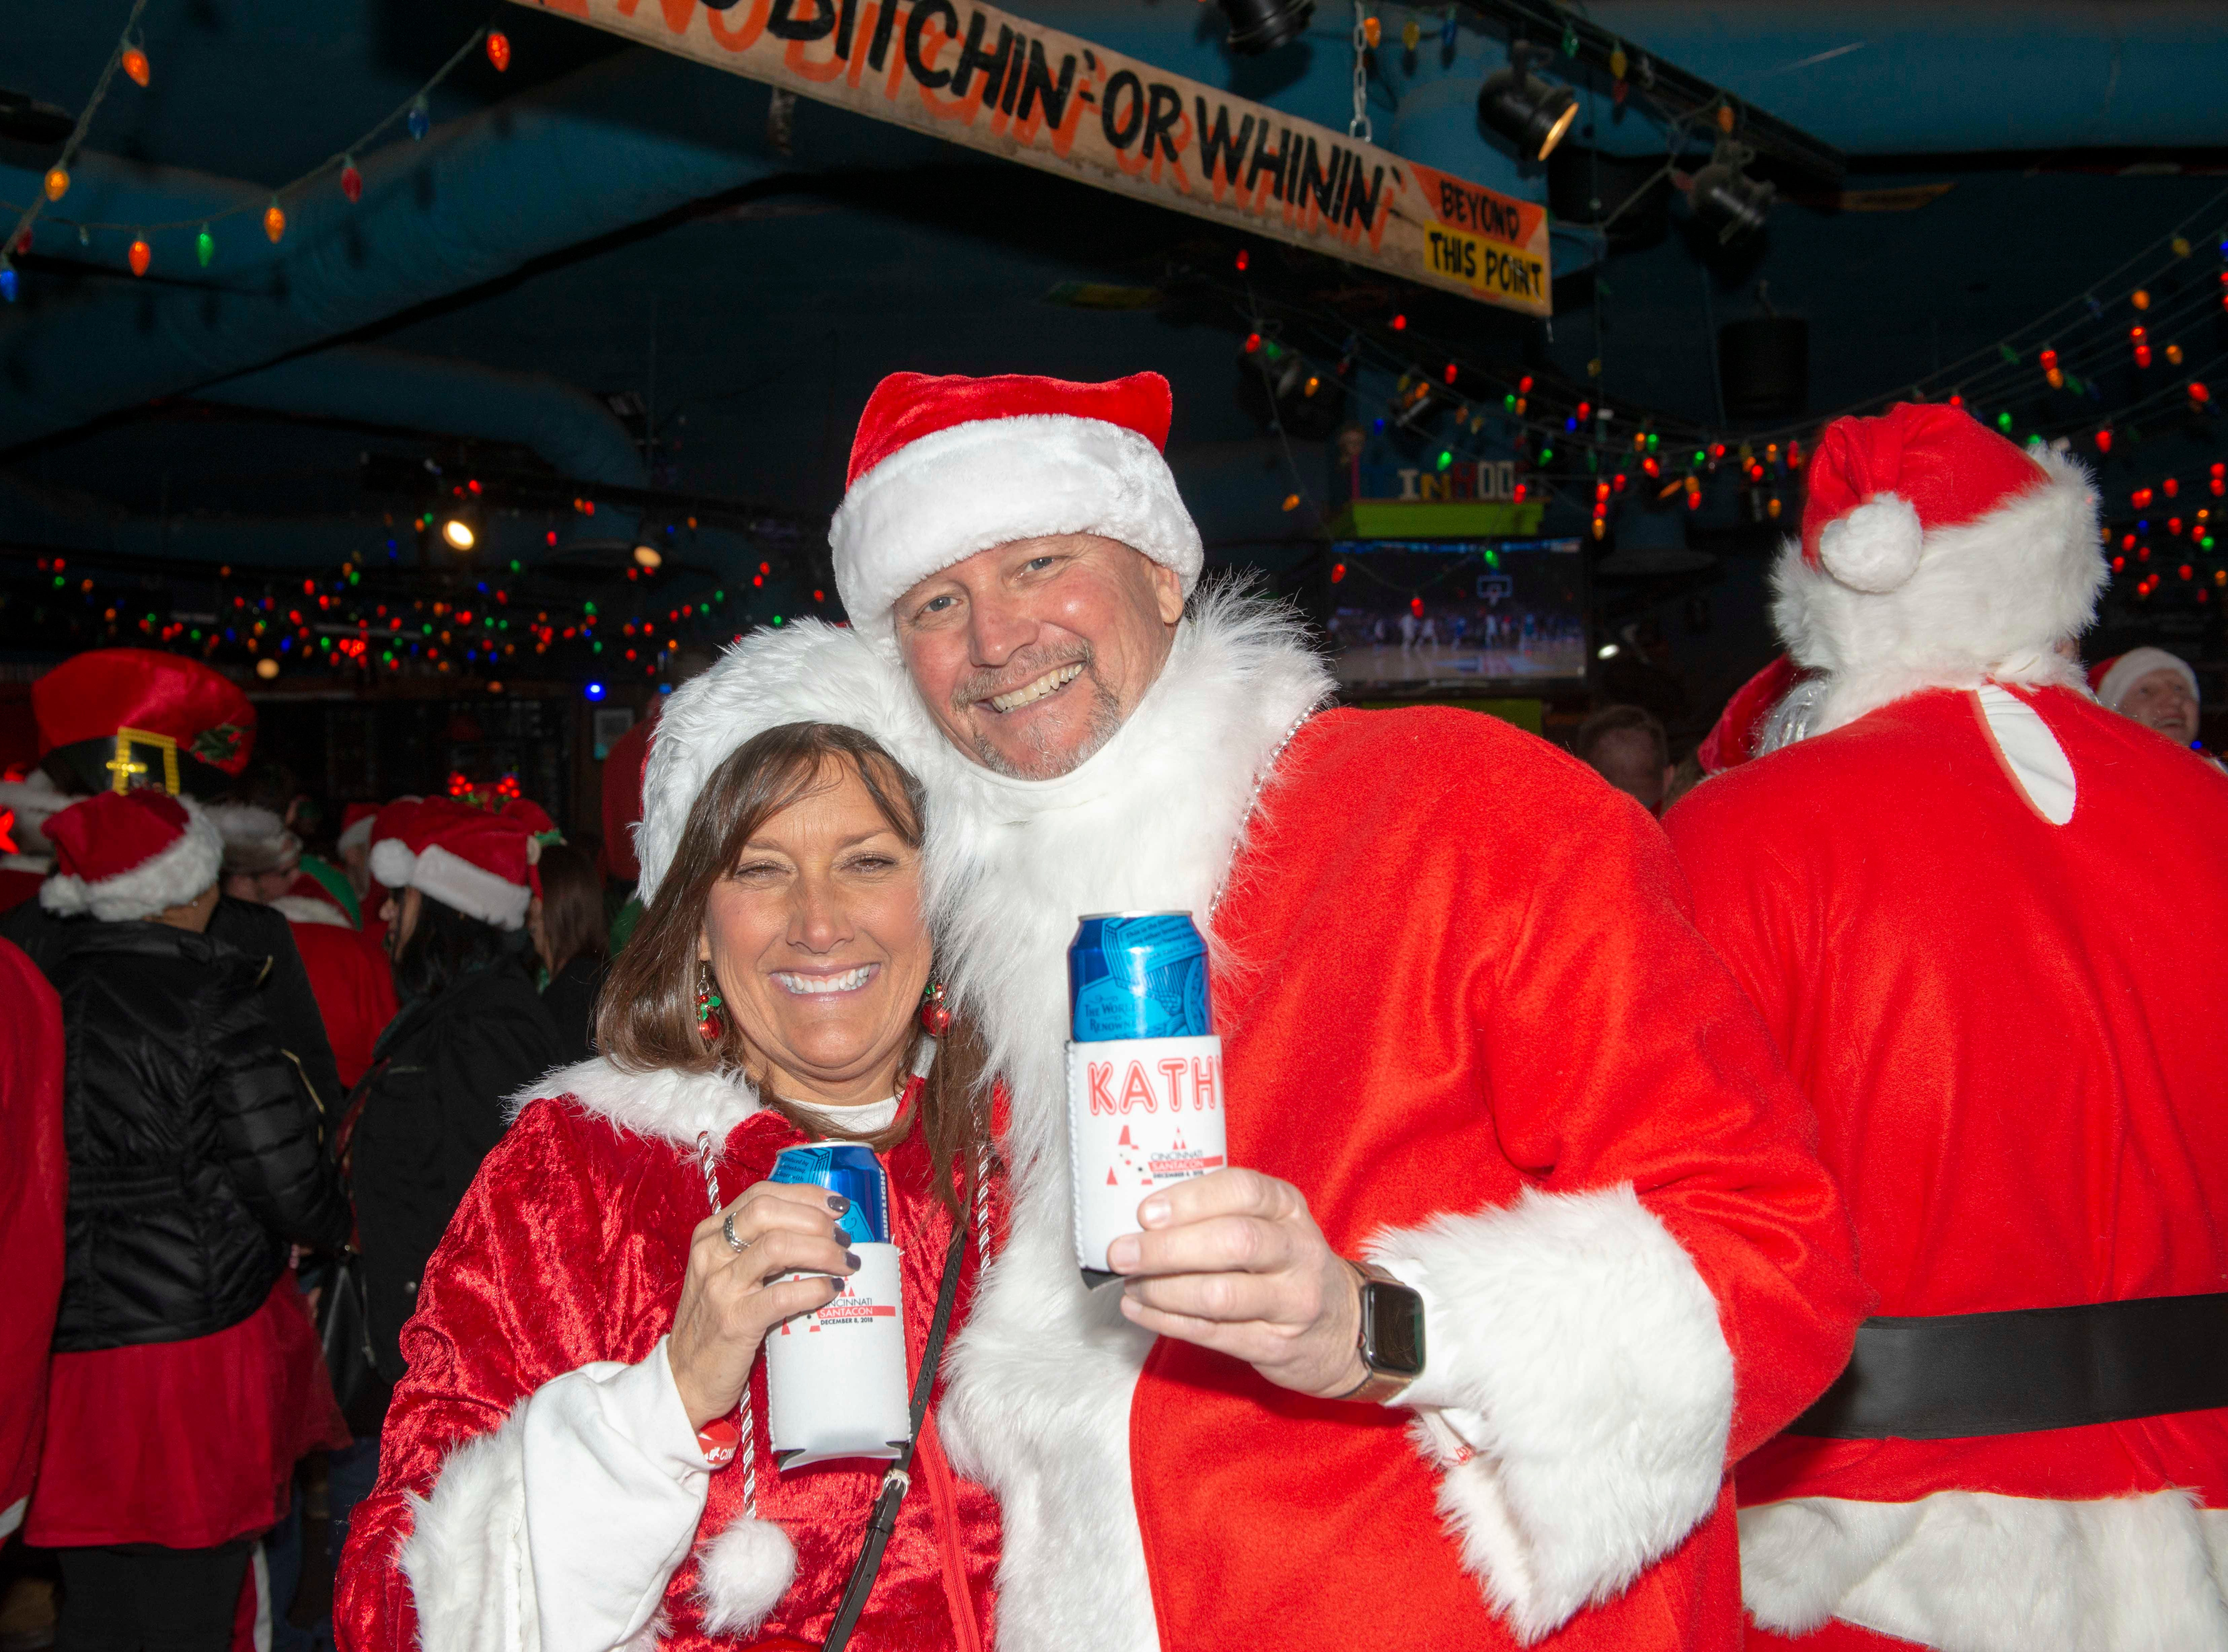 Cincinnati SantaCon 2018 brought hundreds of people dressed as Santa Claus and other Christmas characters to The Banks to spread good cheer and charity. Kathy Mills and Rob Patterson.